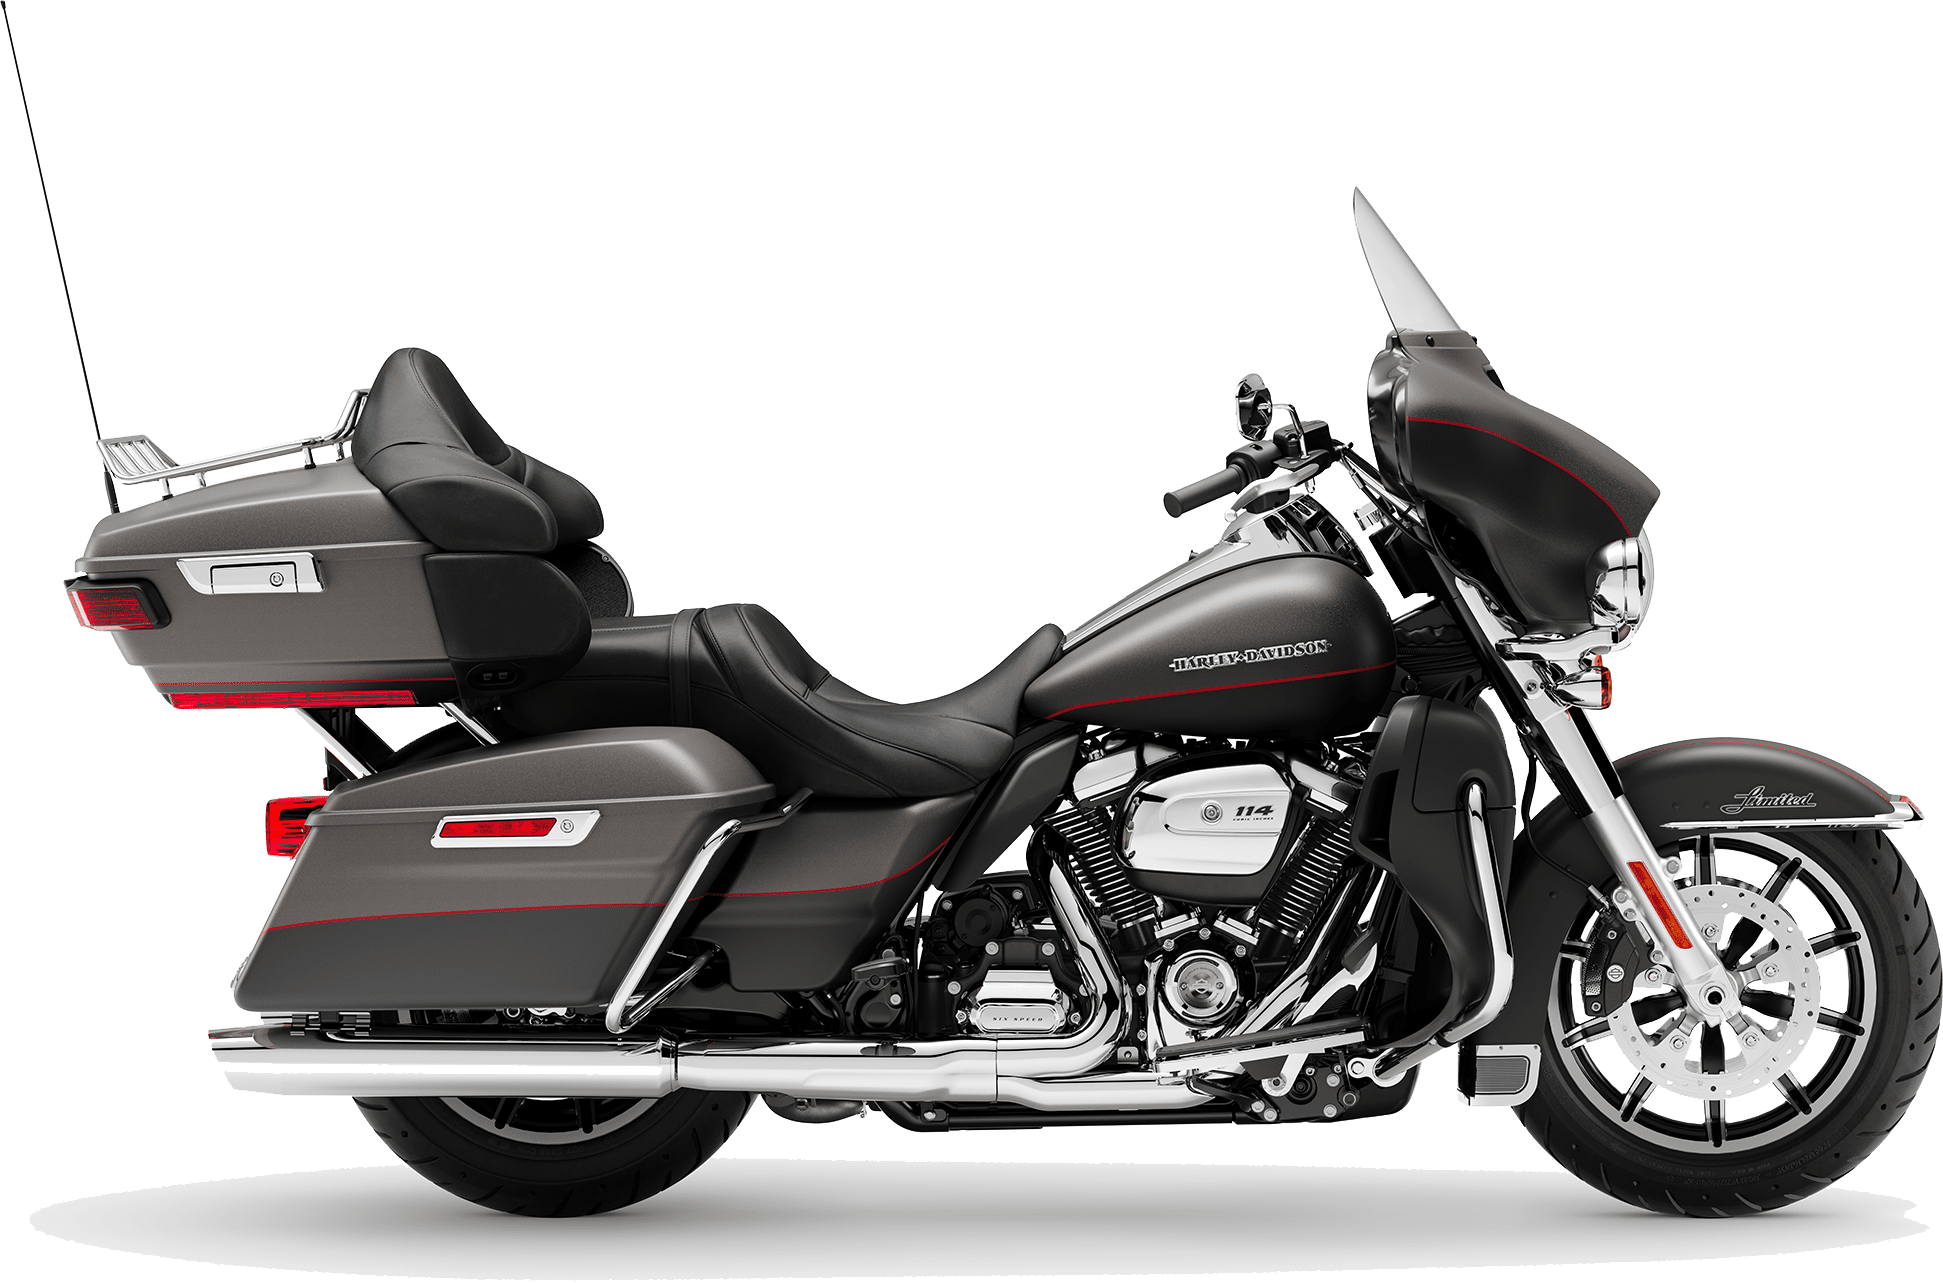 2019 Harley-Davidson H-D Touring Ultra Limited Low Industrial Grey Black Denim